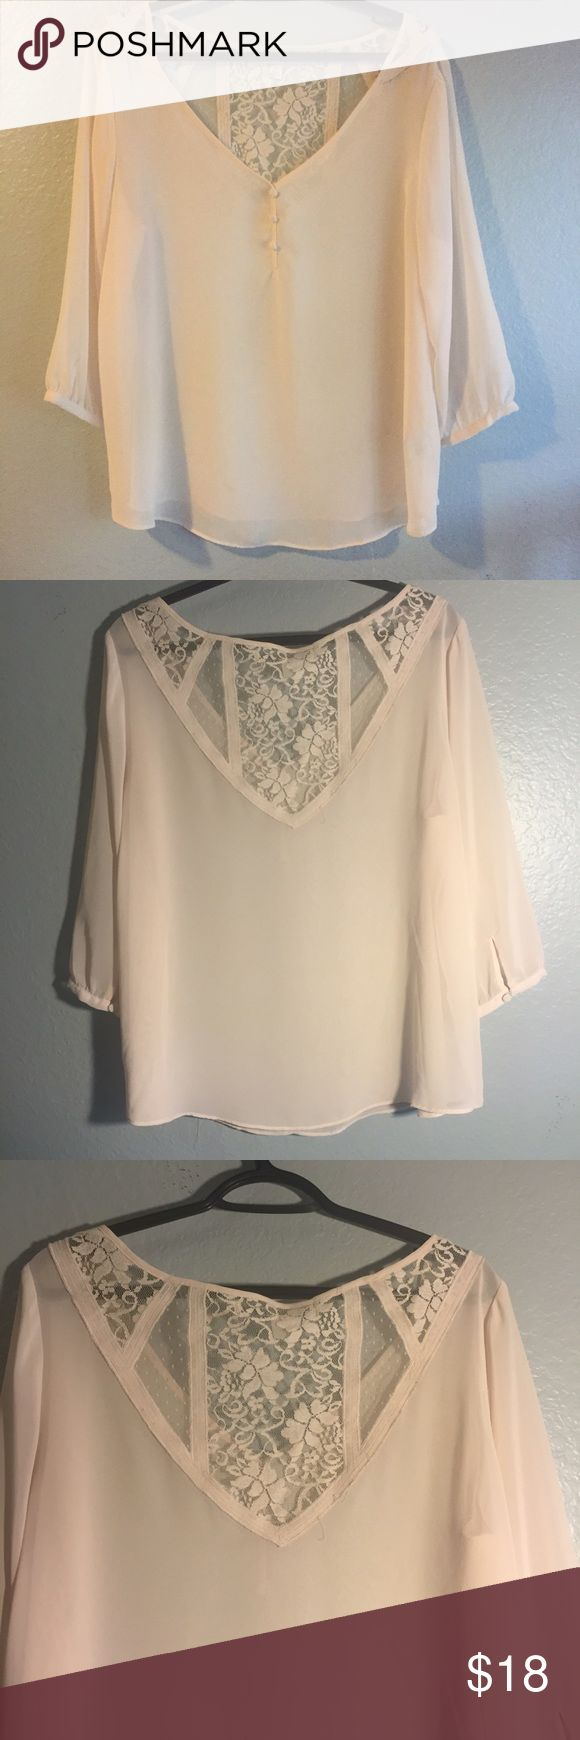 Lauren Conrad Blouse Off white beige blouse. Beautiful detailed lace design on the back of the blouse. Flowy 3 quarter sleeve. LC Lauren Conrad Tops Blouses